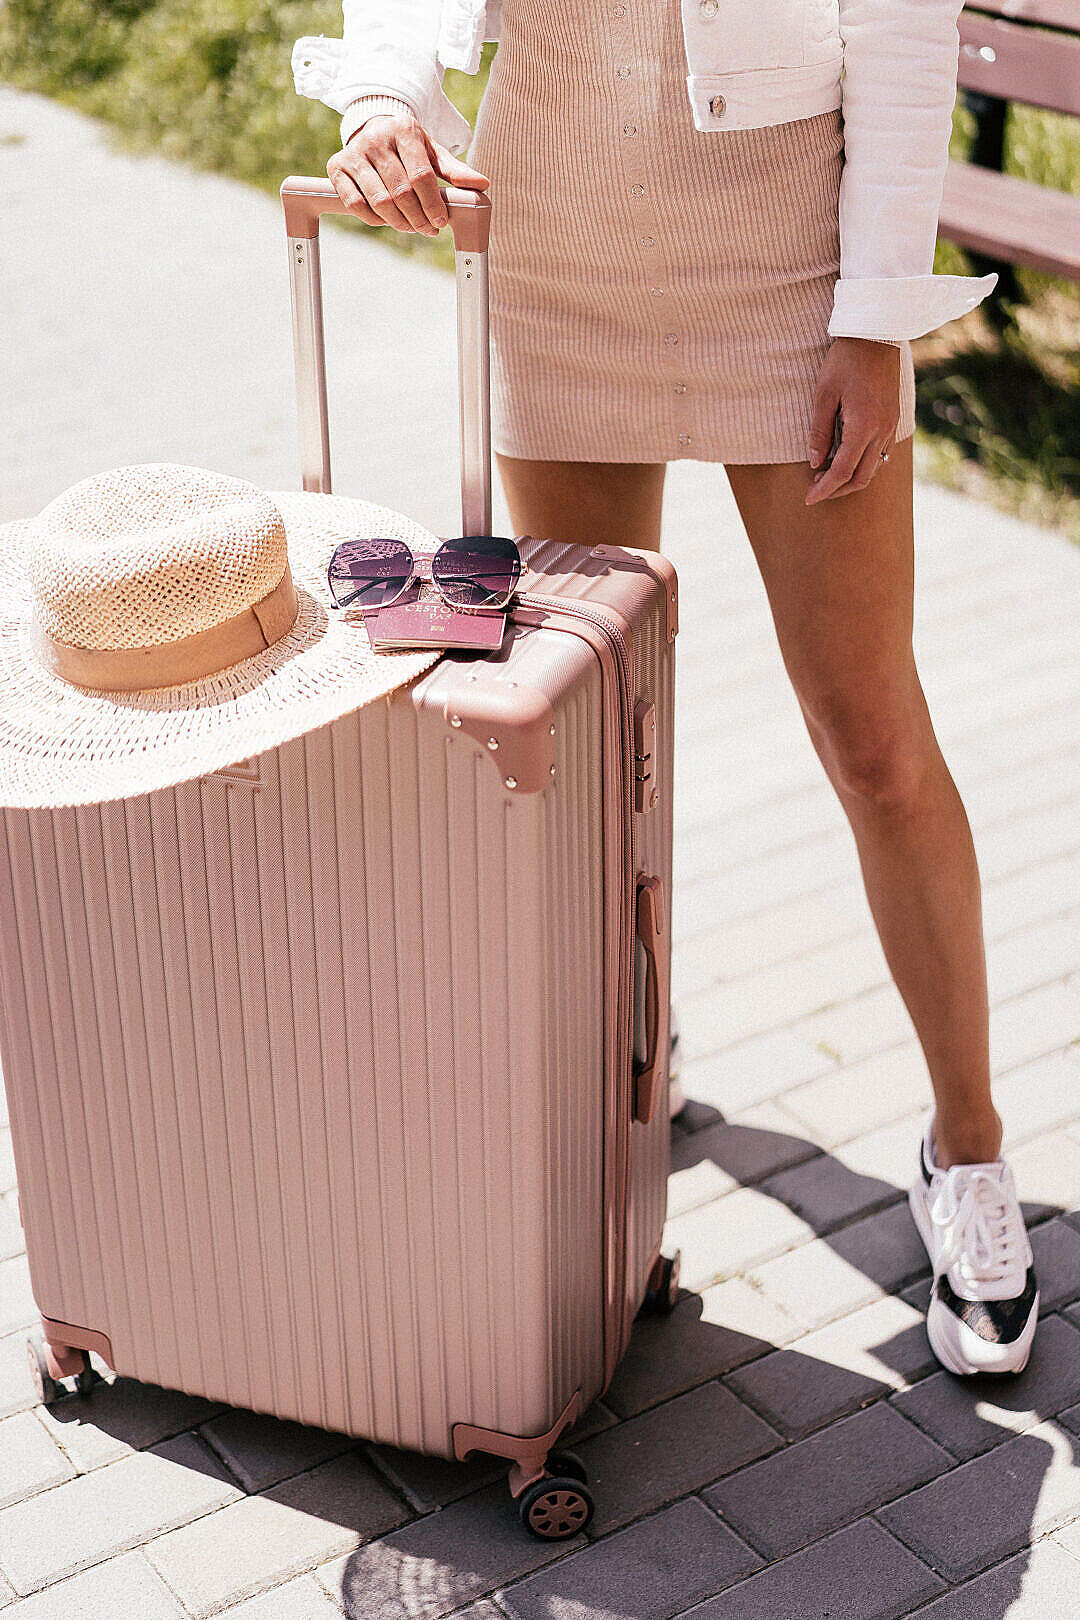 Download Young Woman is Ready for Summer Vacation FREE Stock Photo